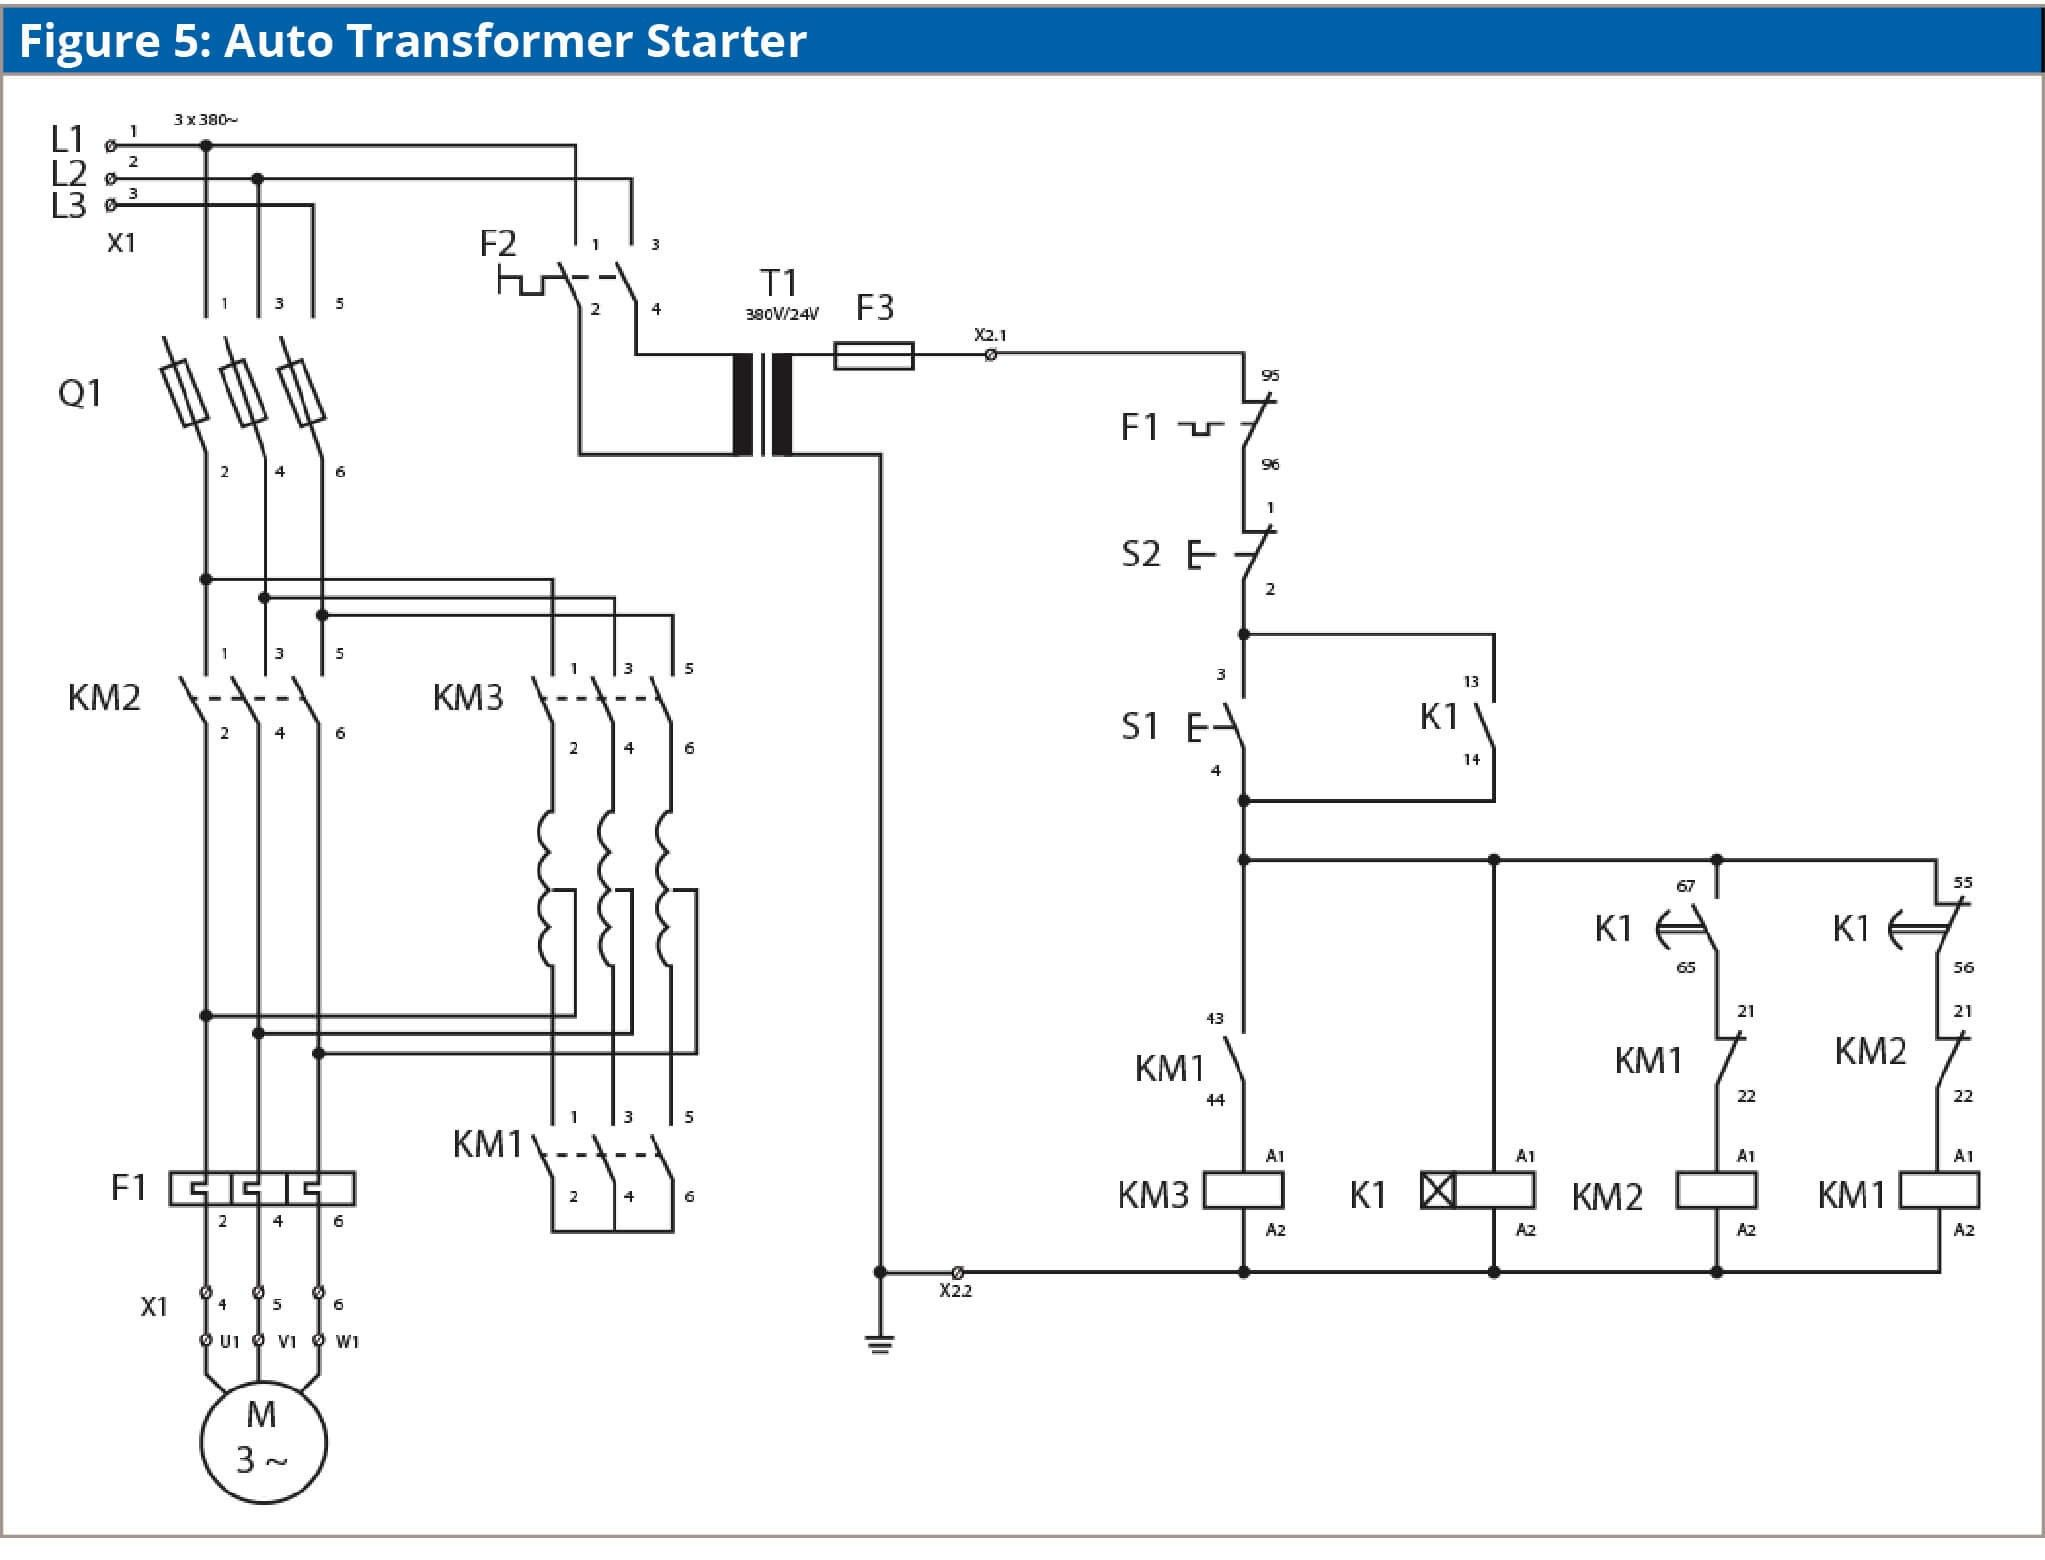 New Wiring Diagram Of Auto Transformer Starter Diagram Diagramtemplate Diagramsample Auto Transformer Diagram Transformers